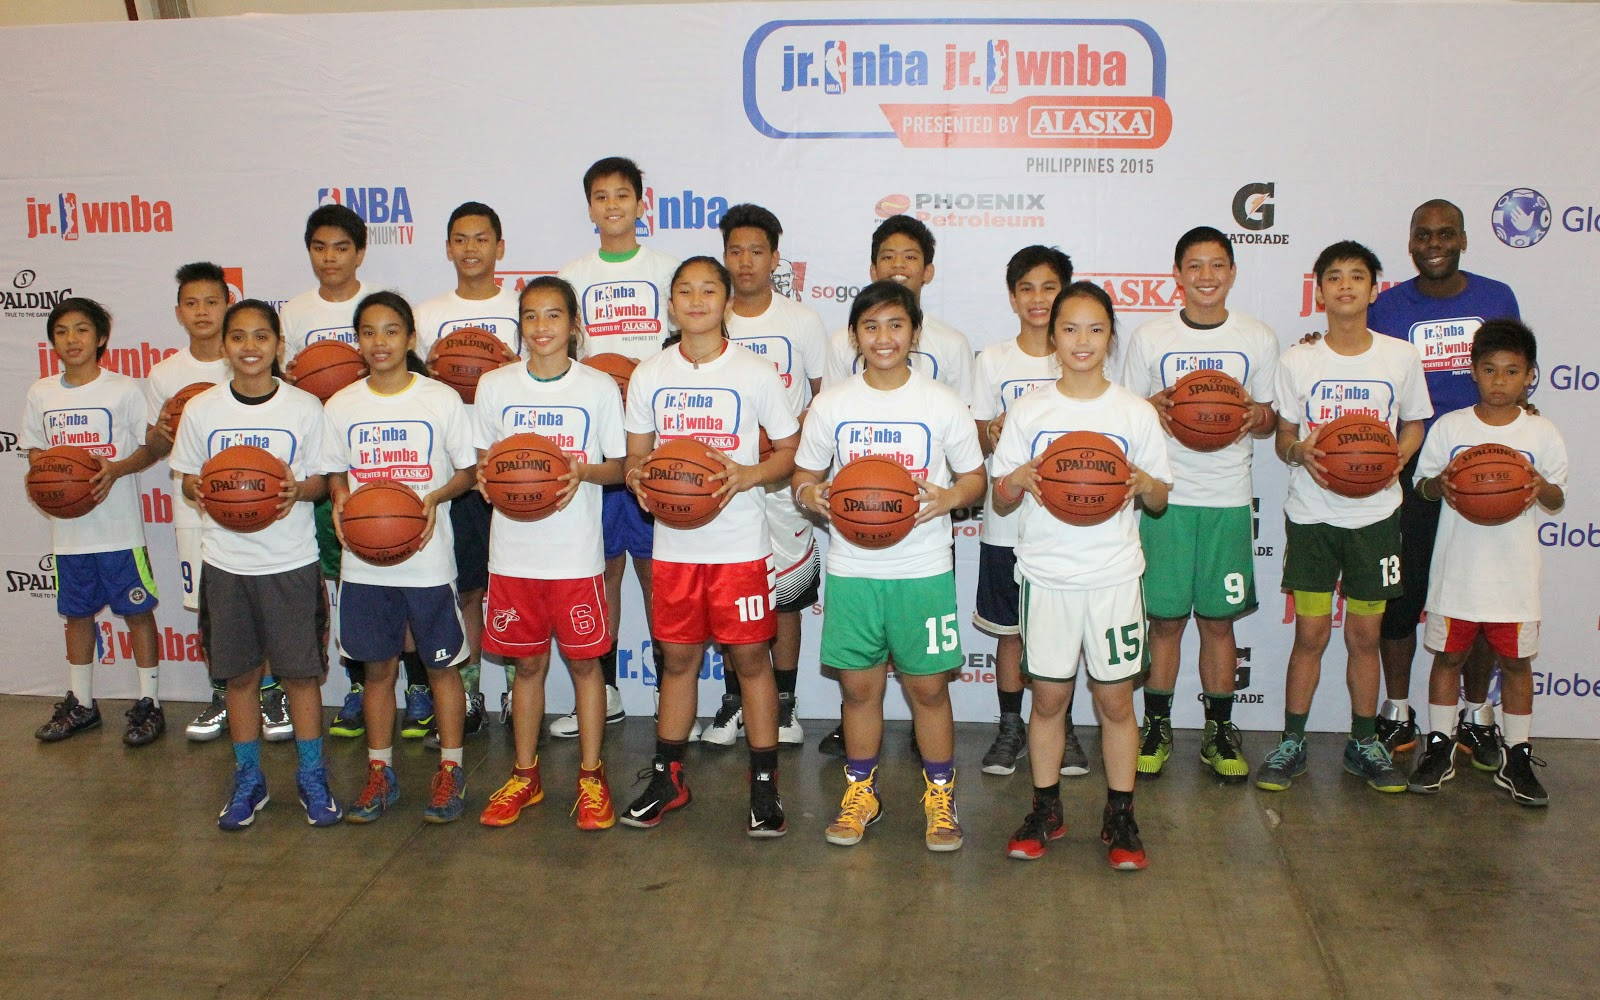 11 Boys & 6 girls Will Represent NCR at National Training Camp of Jr. NBA/Jr. WNBA Philippines 2015